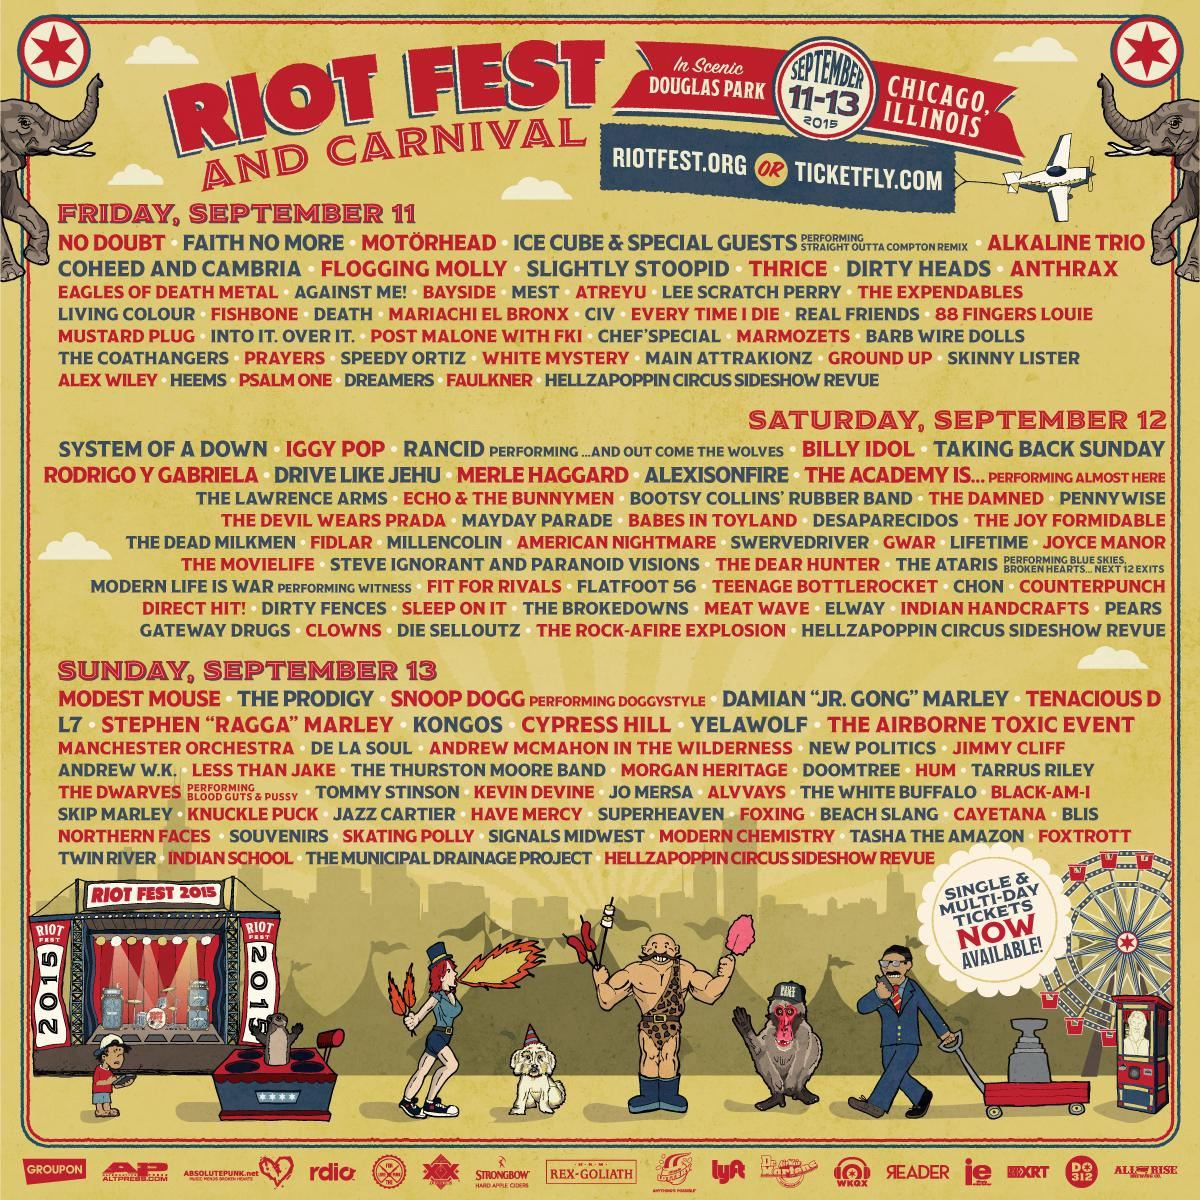 Single day tix are now on sale for @RiotFest Chicago! We're playing Fri 9/11, get tix now at http://t.co/EnytjuGGy2! http://t.co/P7IPZEUdus